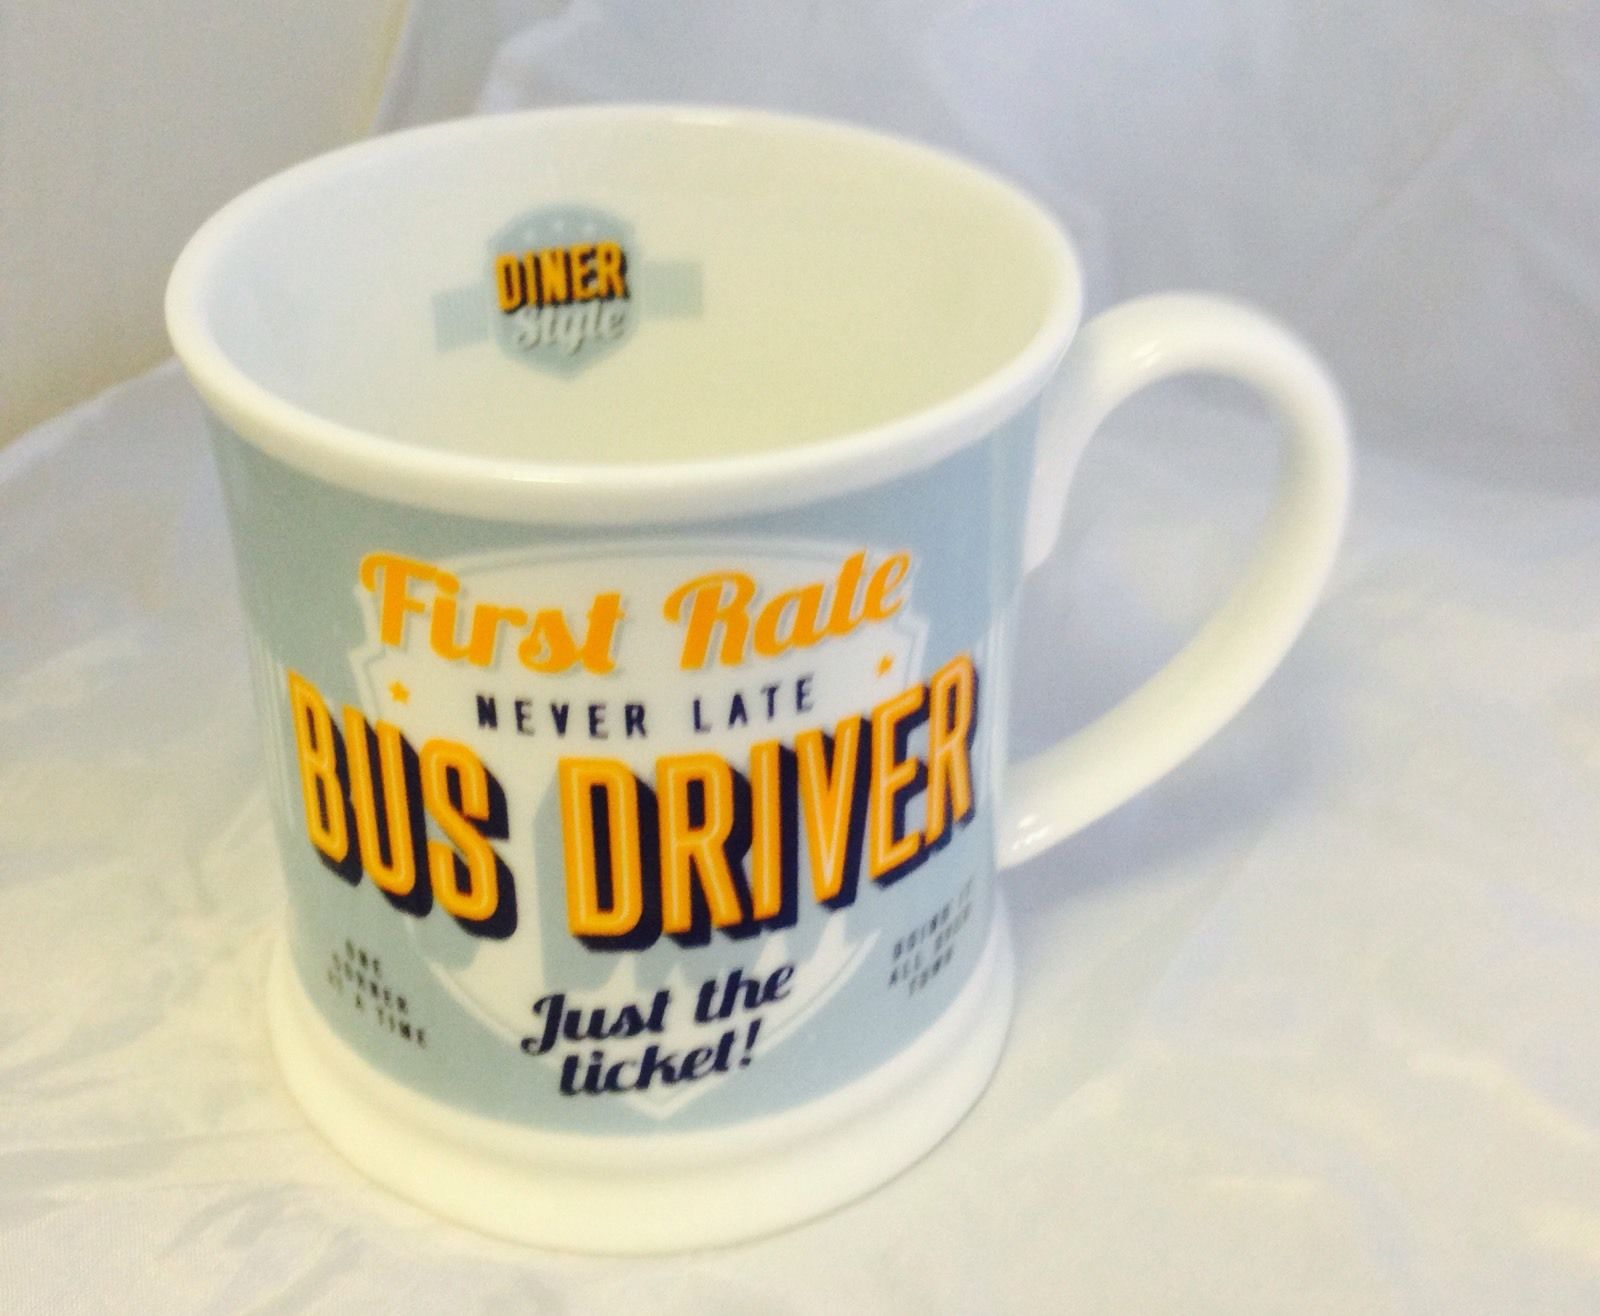 'Bus Driver' Diner Mug- Occupations Cup range